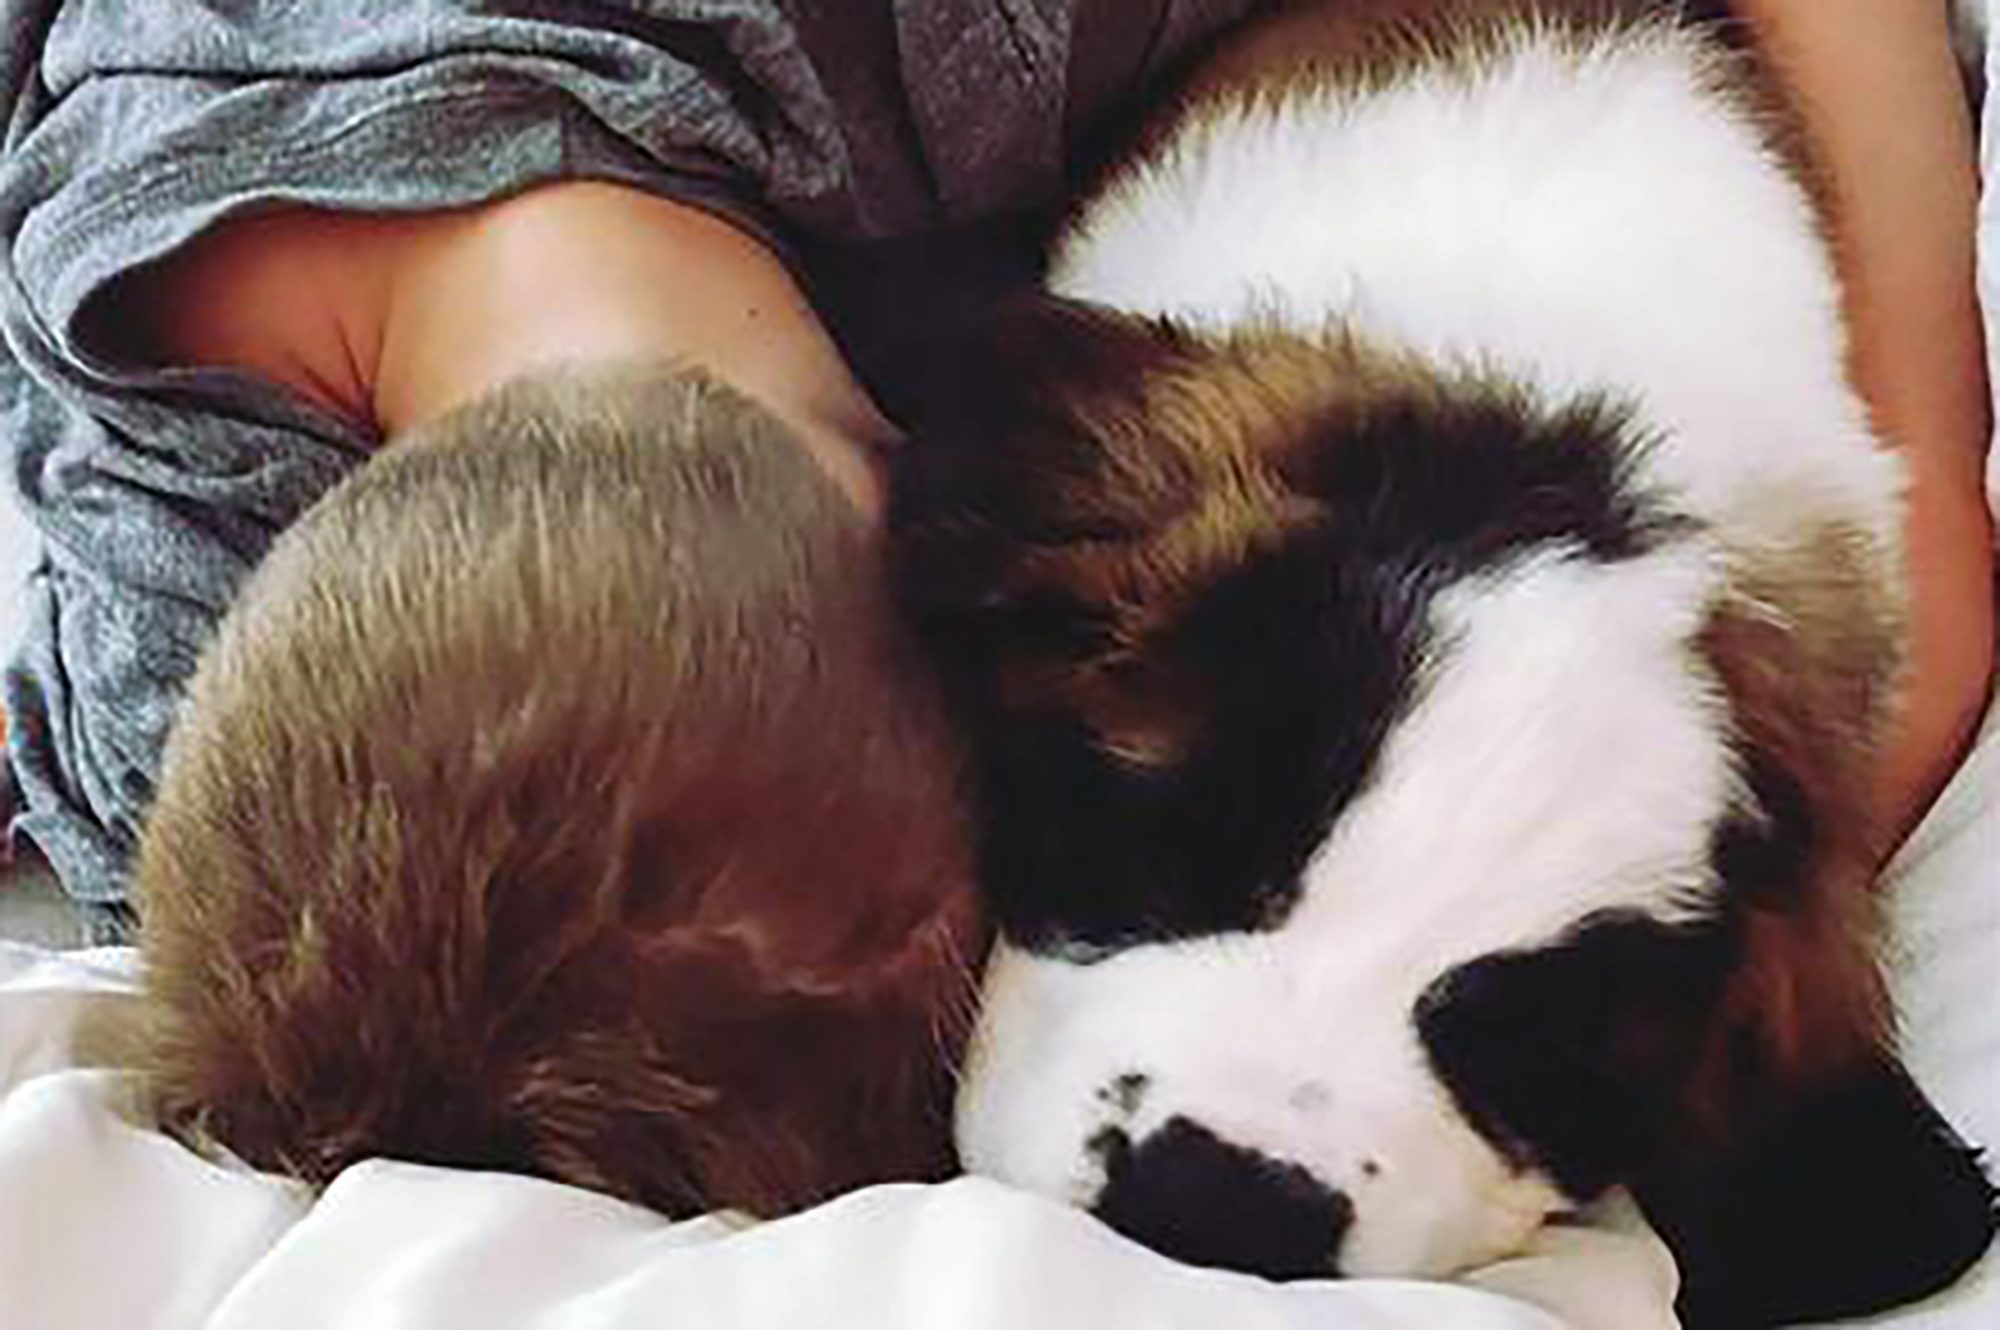 Black and white large dog cuddles with boy